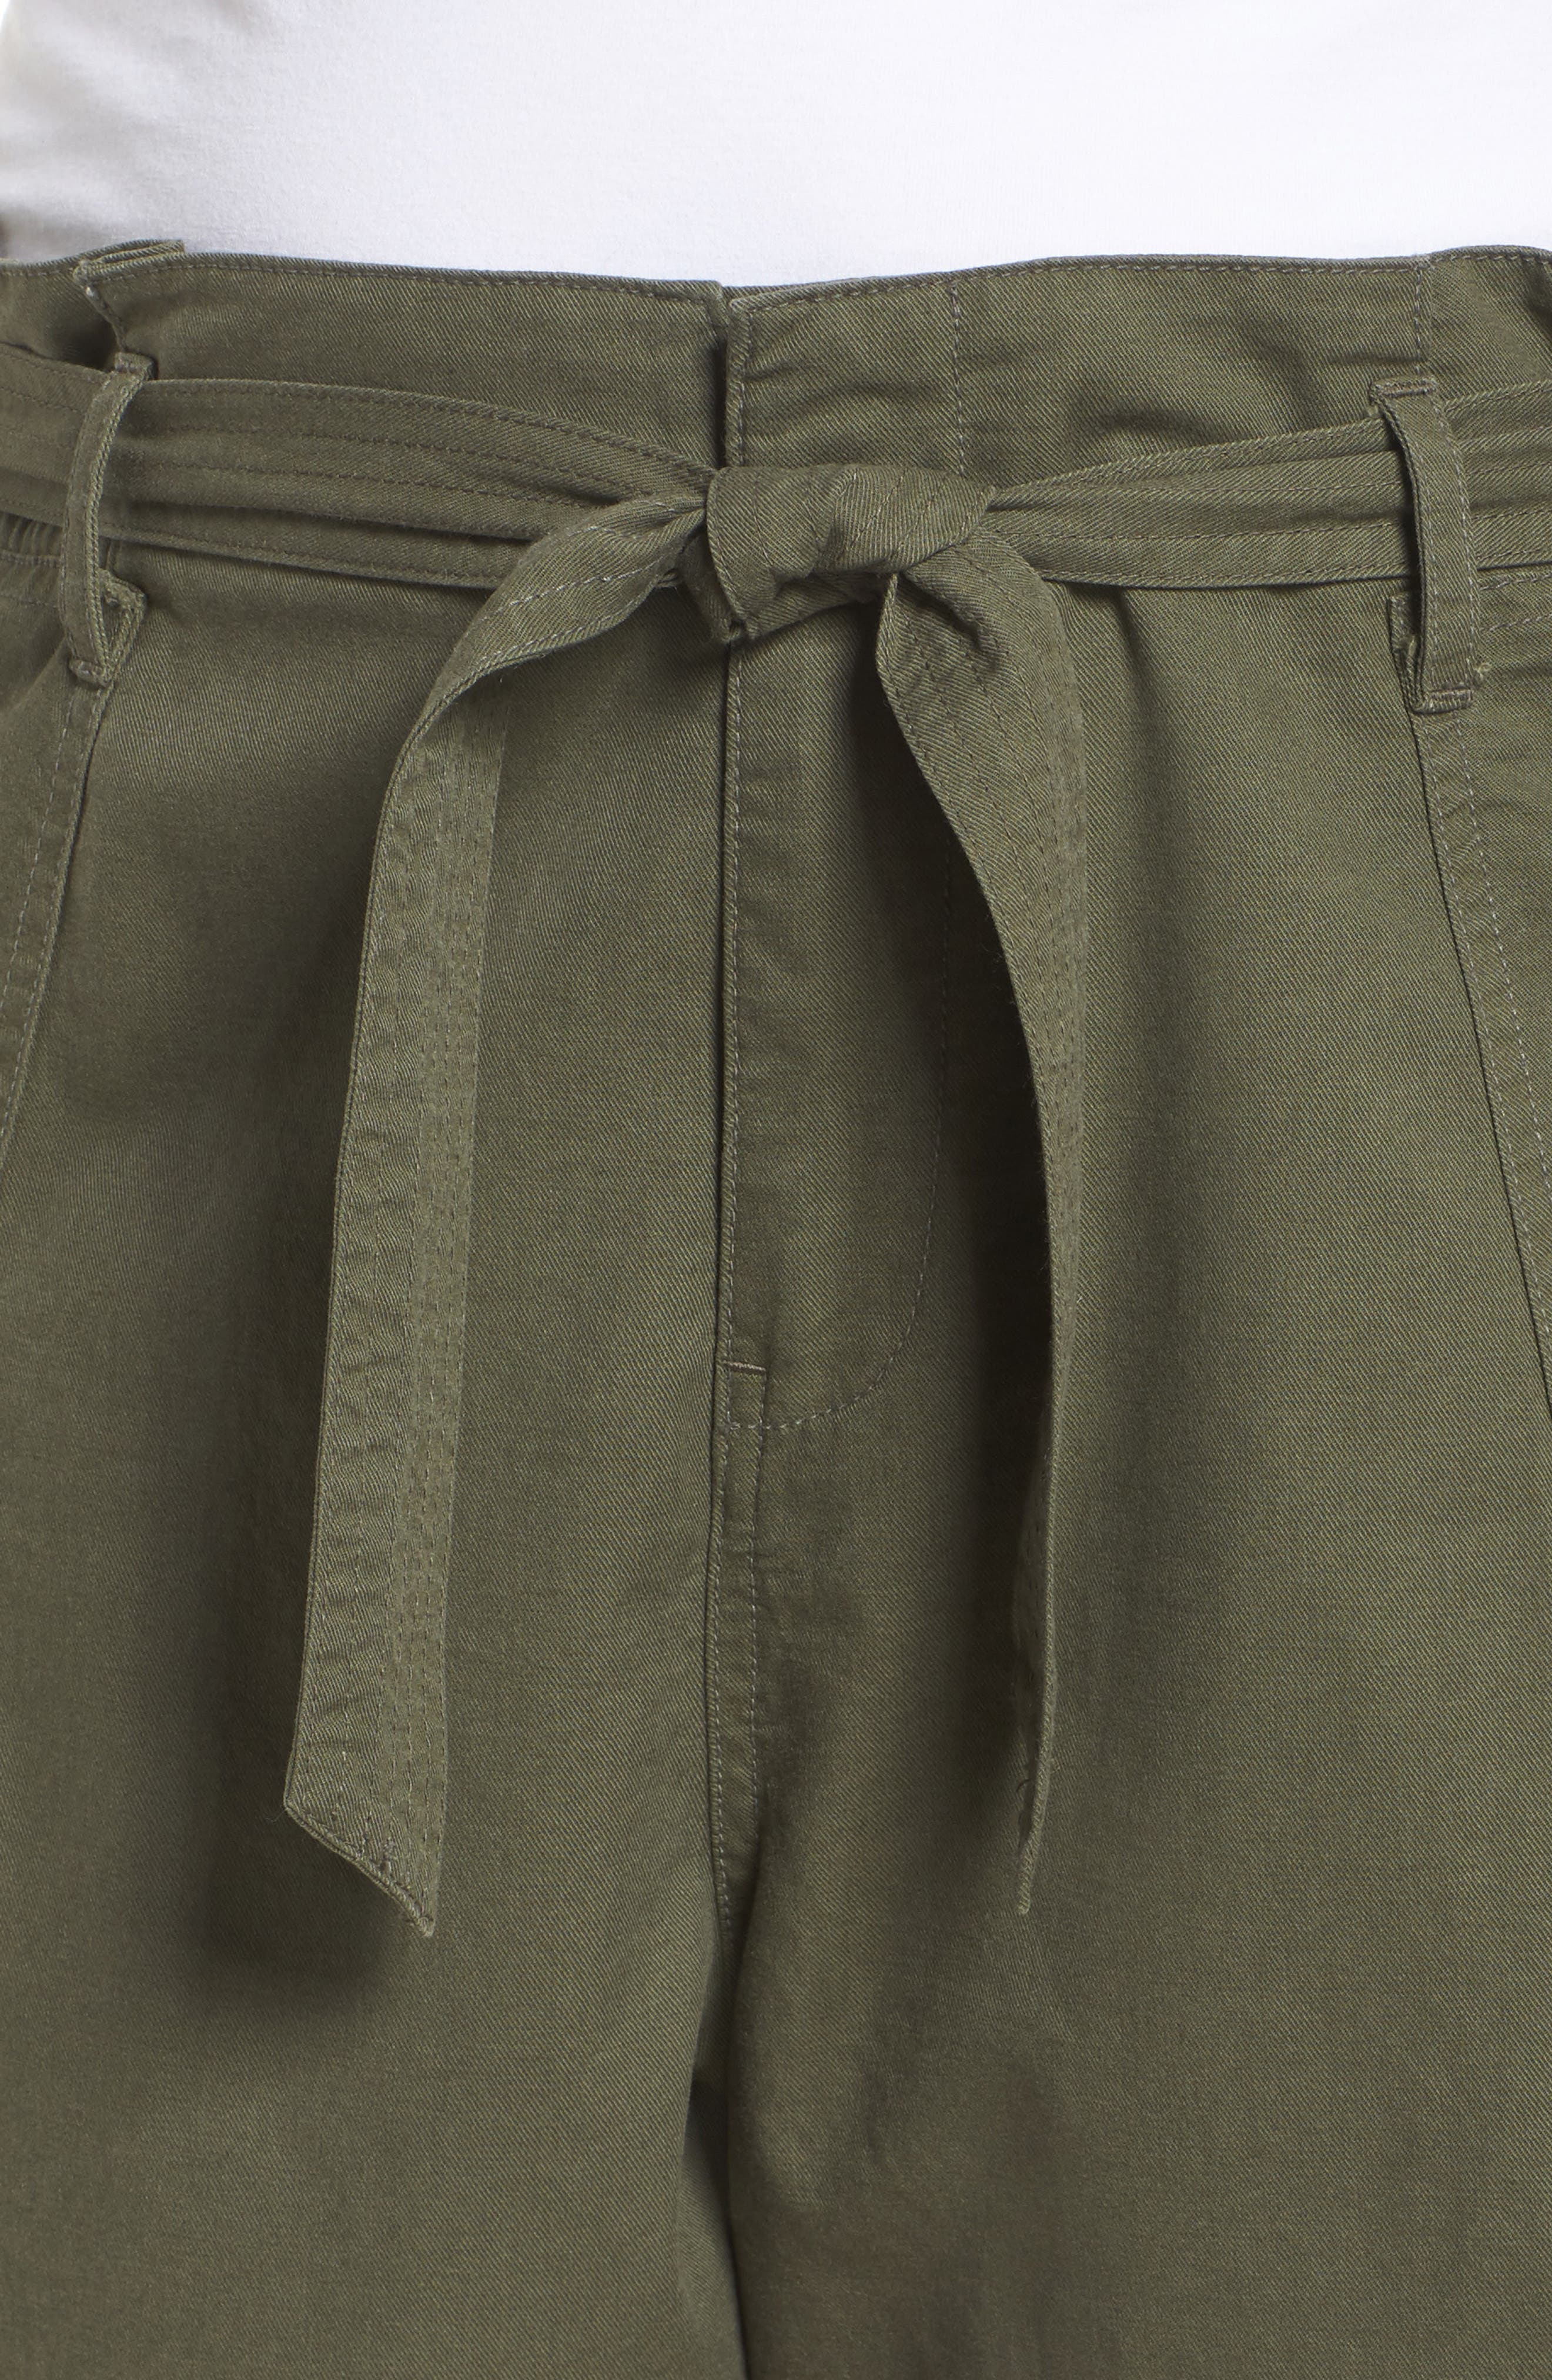 Belted Twill Shorts,                             Alternate thumbnail 4, color,                             Olive Sarma